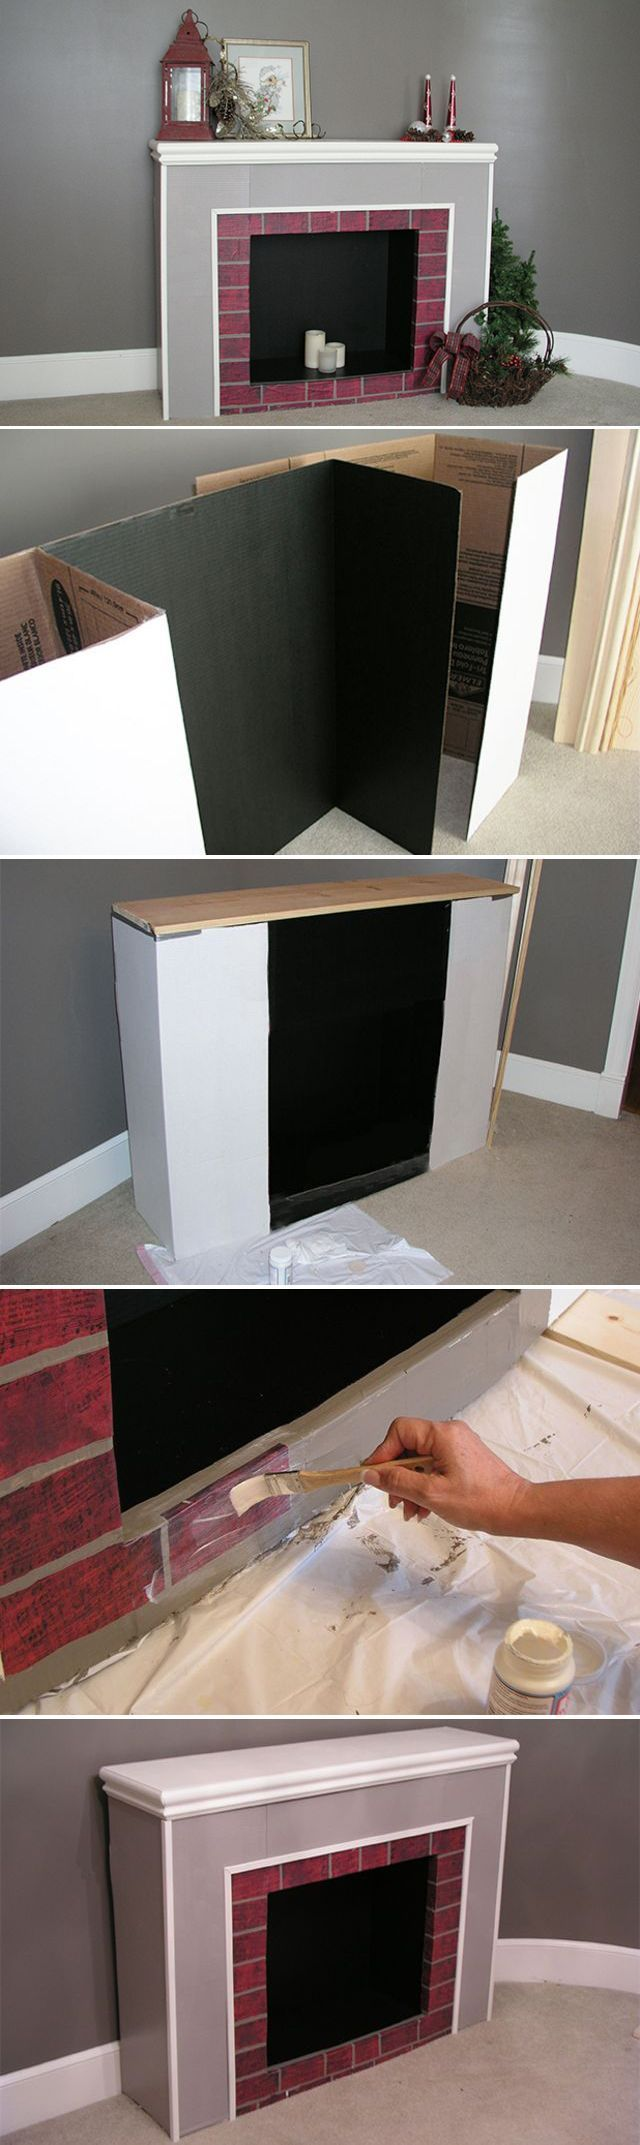 If you don't have a fireplace, but still want to hang stockings and decorate a mantel, you can craft one out of cardboard! Using cardboard display boards (ones students use for science projects), you can build a realistic (and lightweight) fireplace. This simple DIY can change your entire living space and really set the mood for a magical Christmas holiday! DIY instructions here: www.ehow.com/...: